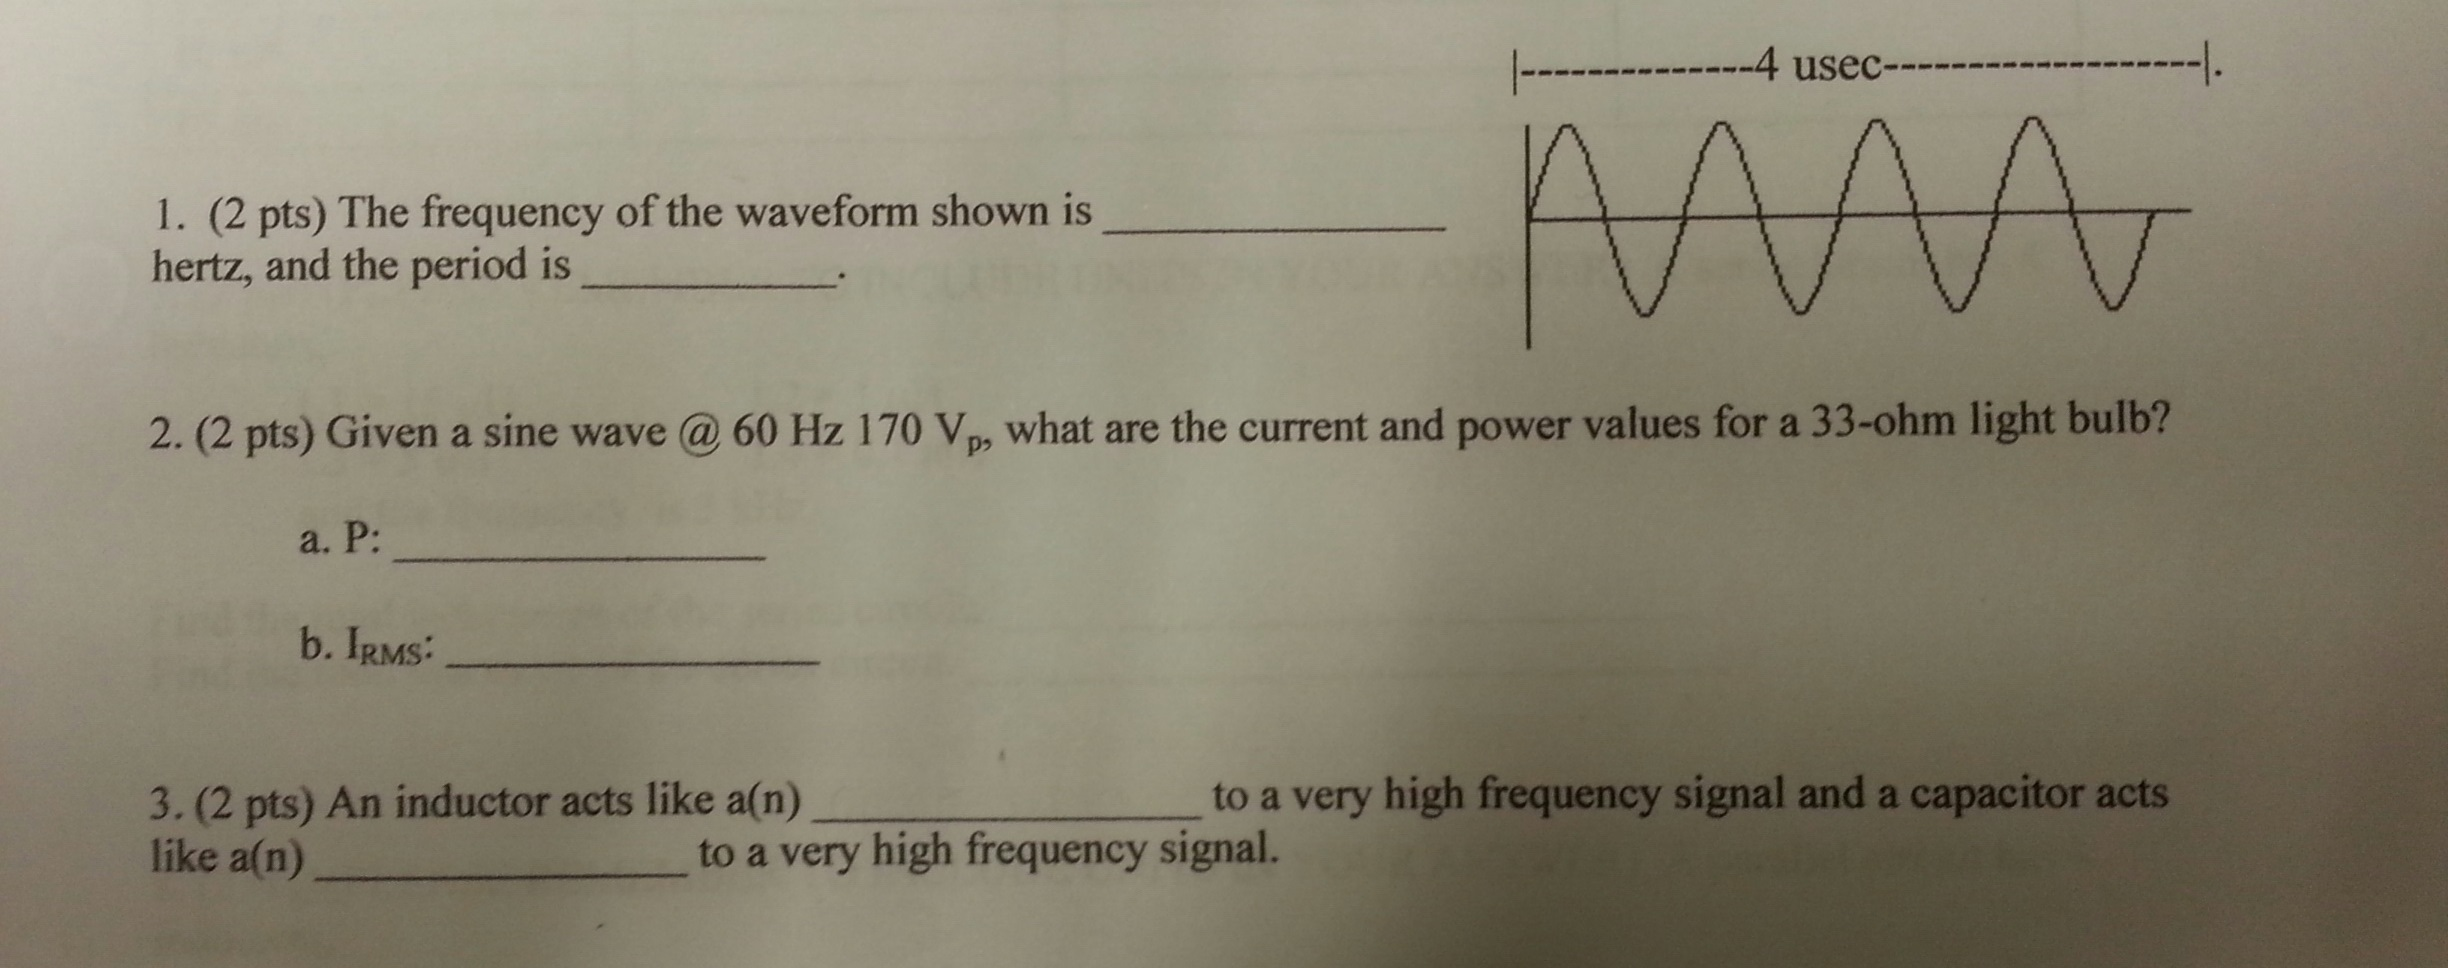 The frequency of the waveform shown is hertz, and